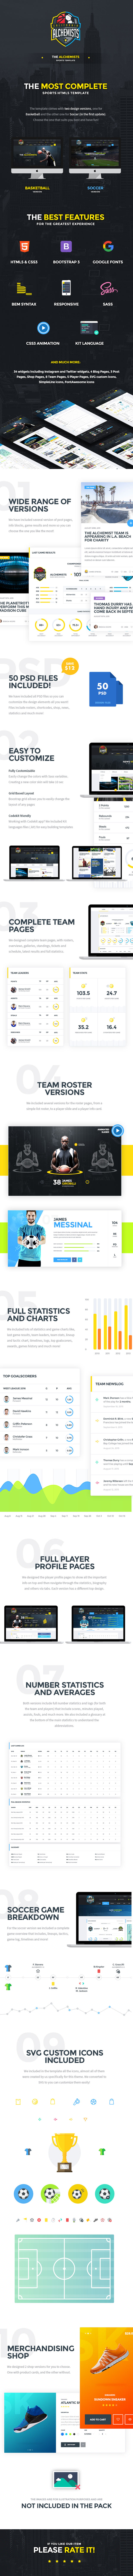 The Alchemists HTML Description Alchemists - Basketball, Soccer, Football Sports Club and News HTML Template (Nonprofit) Alchemists - Basketball, Soccer, Football Sports Club and News HTML Template (Nonprofit) The Alchemists HTML Description